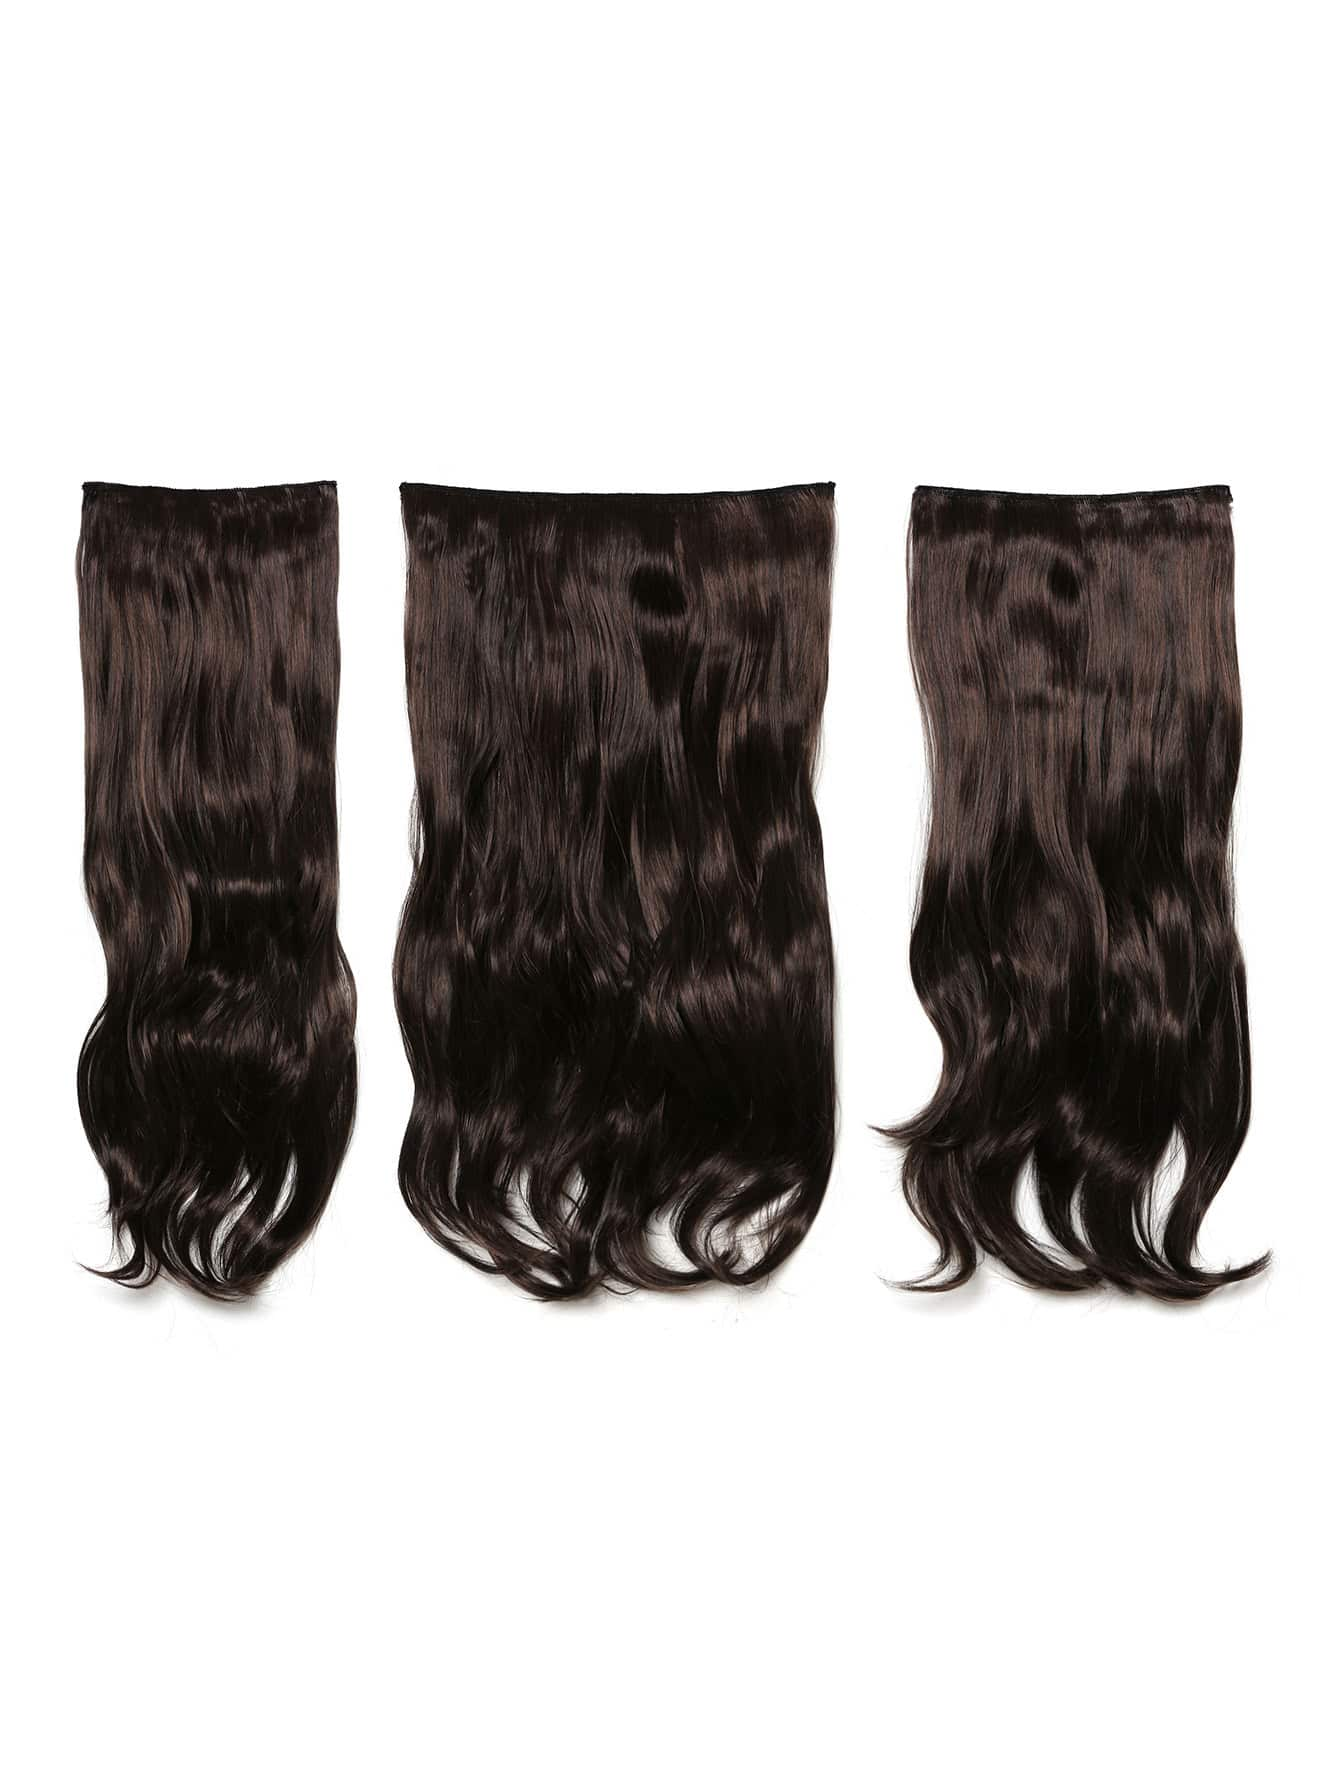 Image of Black Cherry Clip In Soft Wave Hair Extension 3pcs